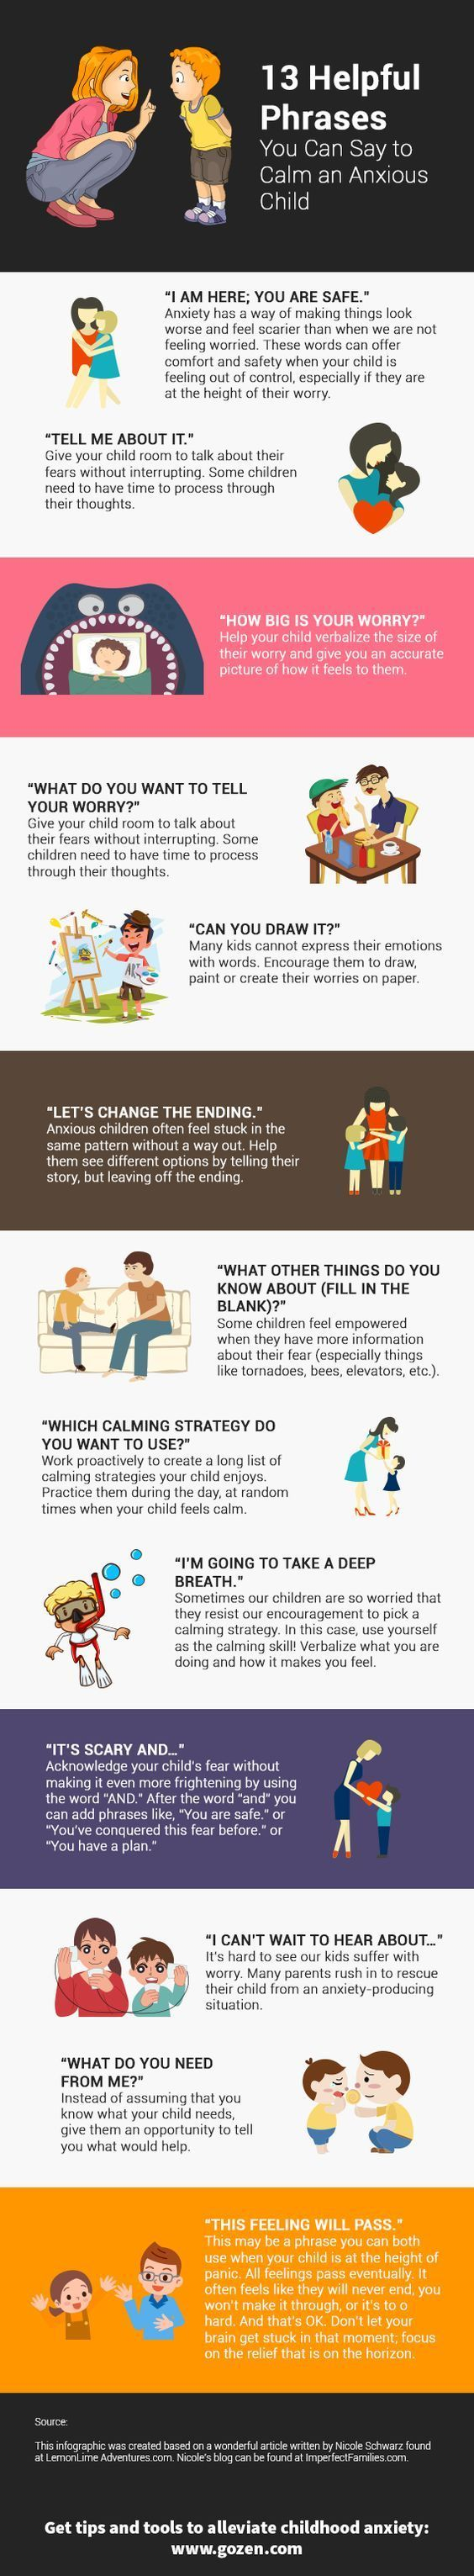 Try these 13 Phrases to Calm Your Anxious Child | Lemon Lime Adventures